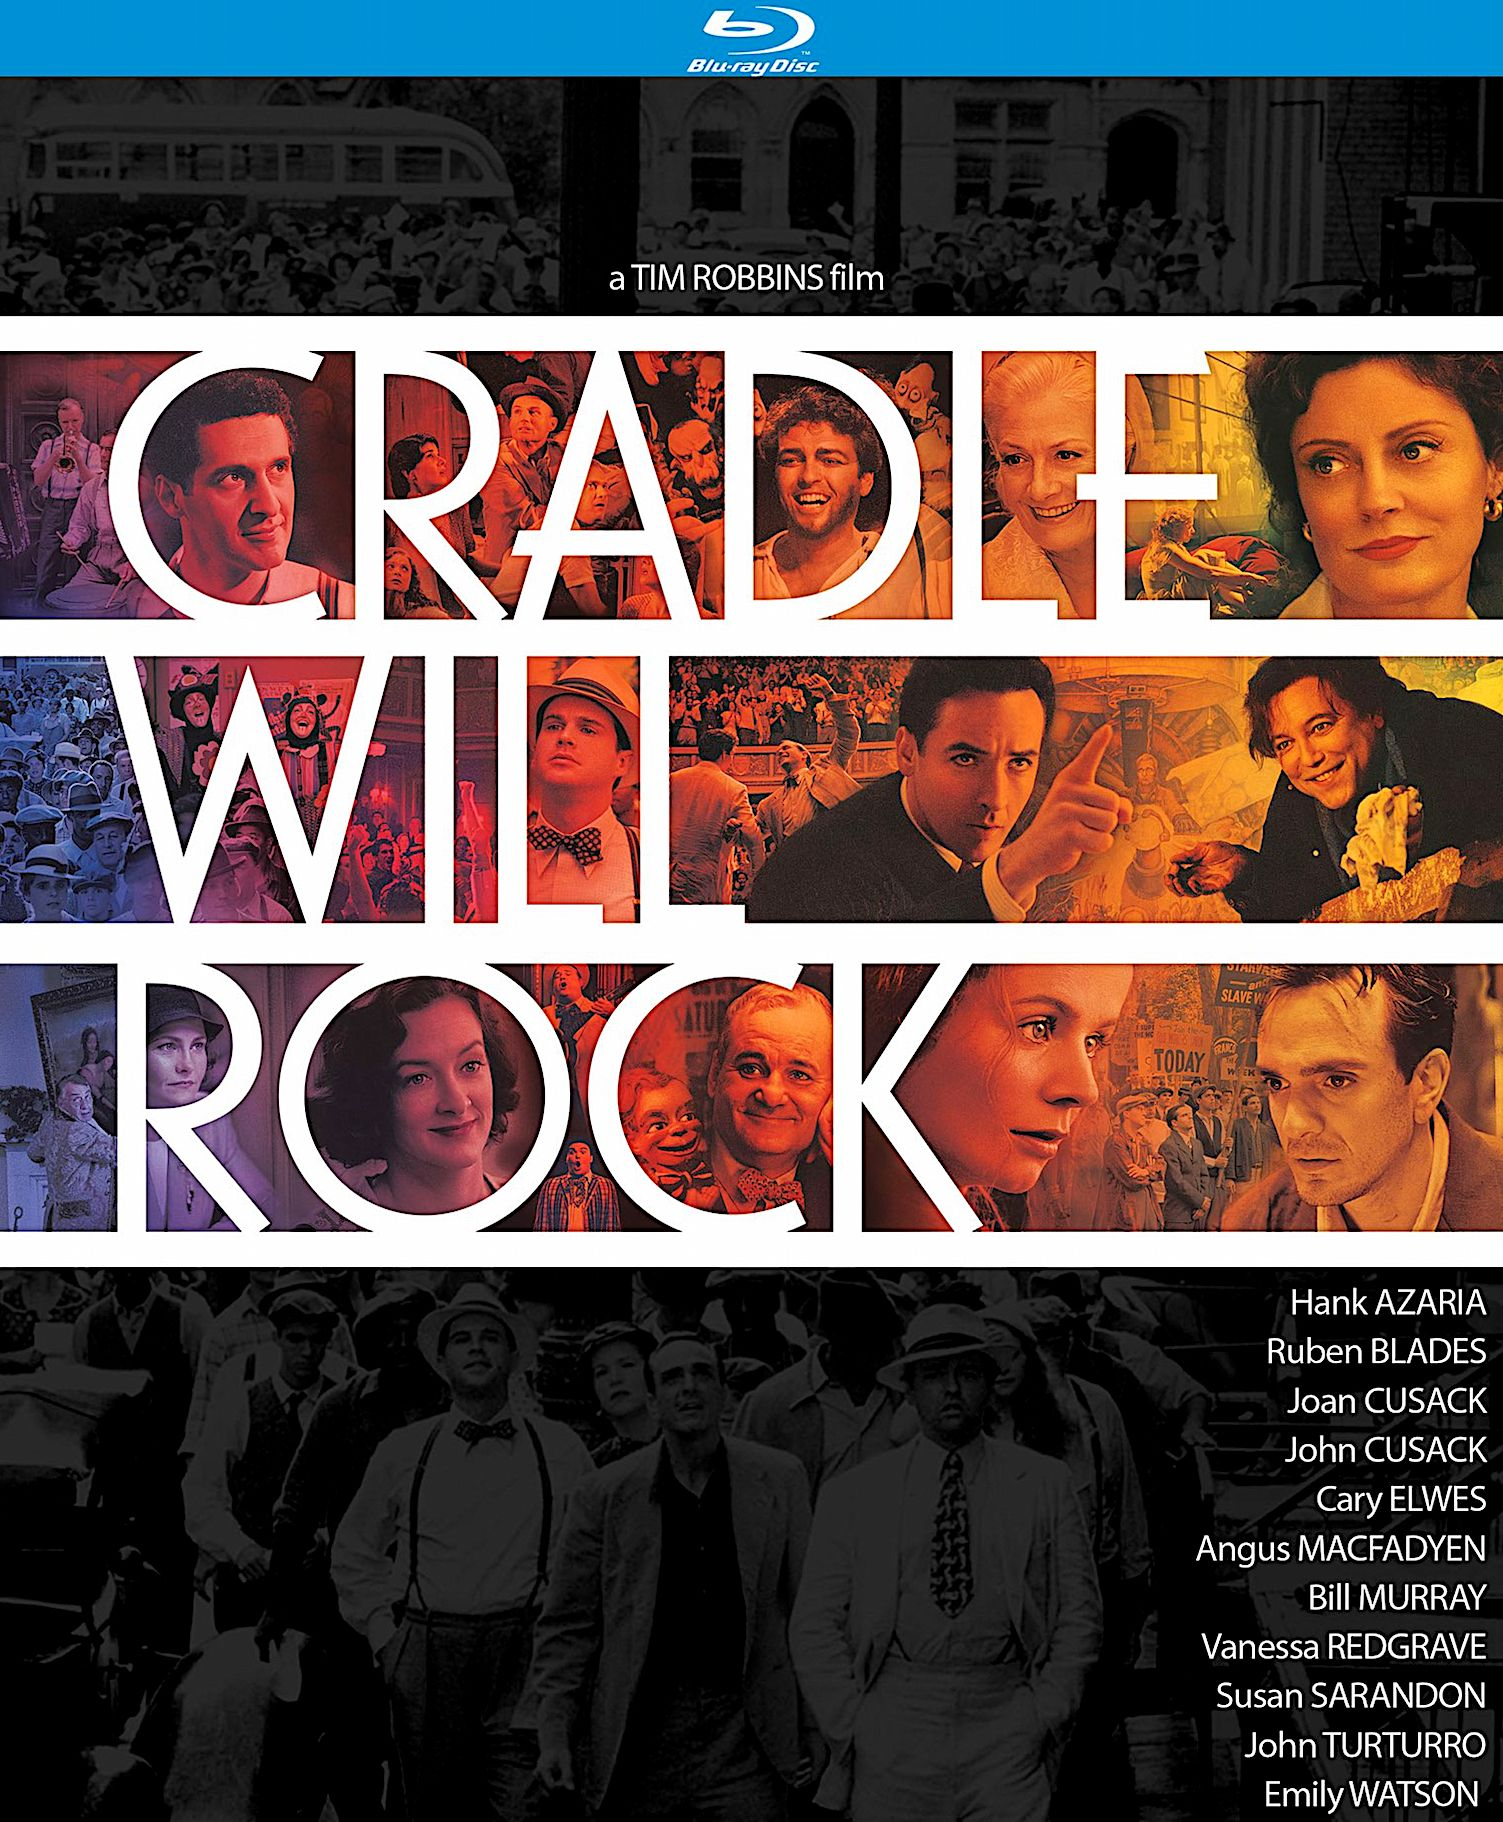 CRADLE WILL ROCK BLU-RAY (KINO LORBER) | RECENT AND UPCOMING